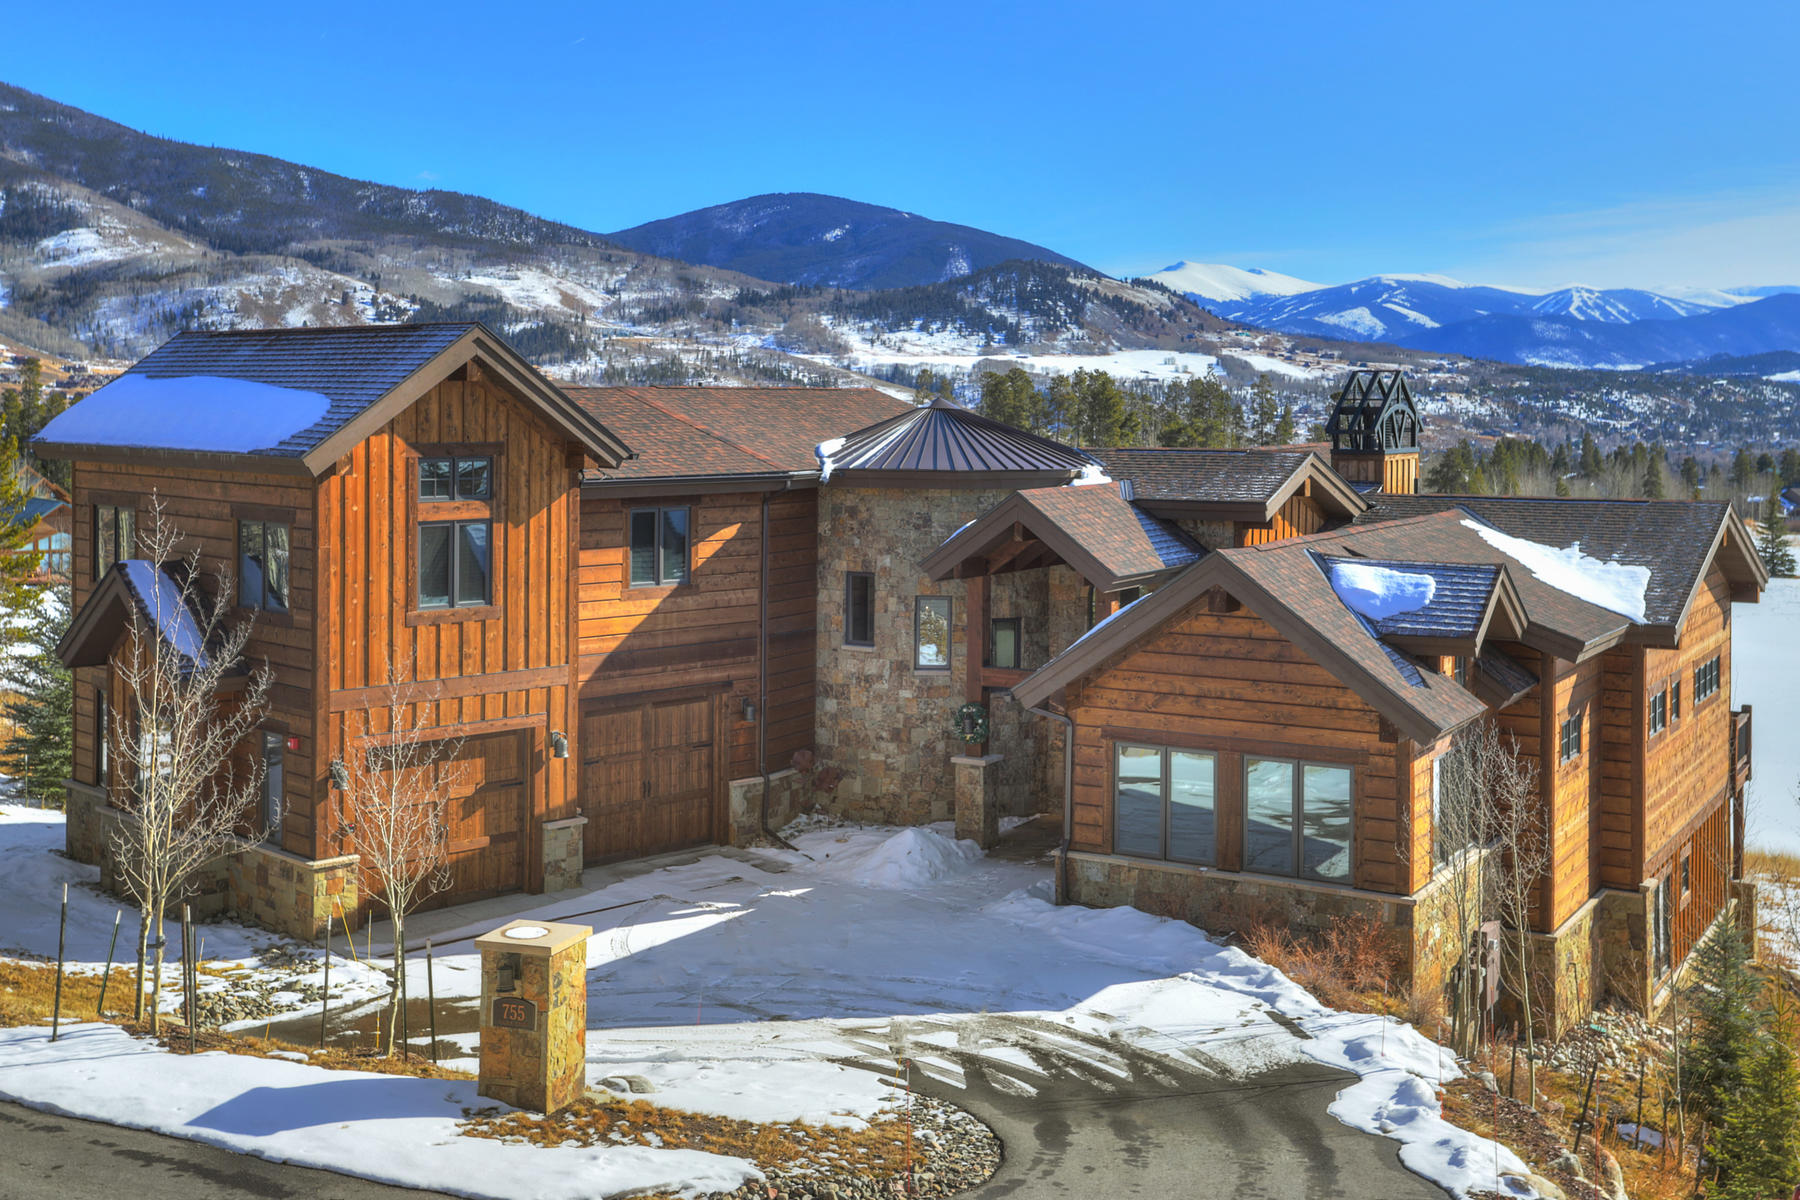 Single Family Homes for Sale at Beautiful Luxury Home in Raven at Three Peaks 755 Golden Eagle Road Silverthorne, Colorado 80498 United States